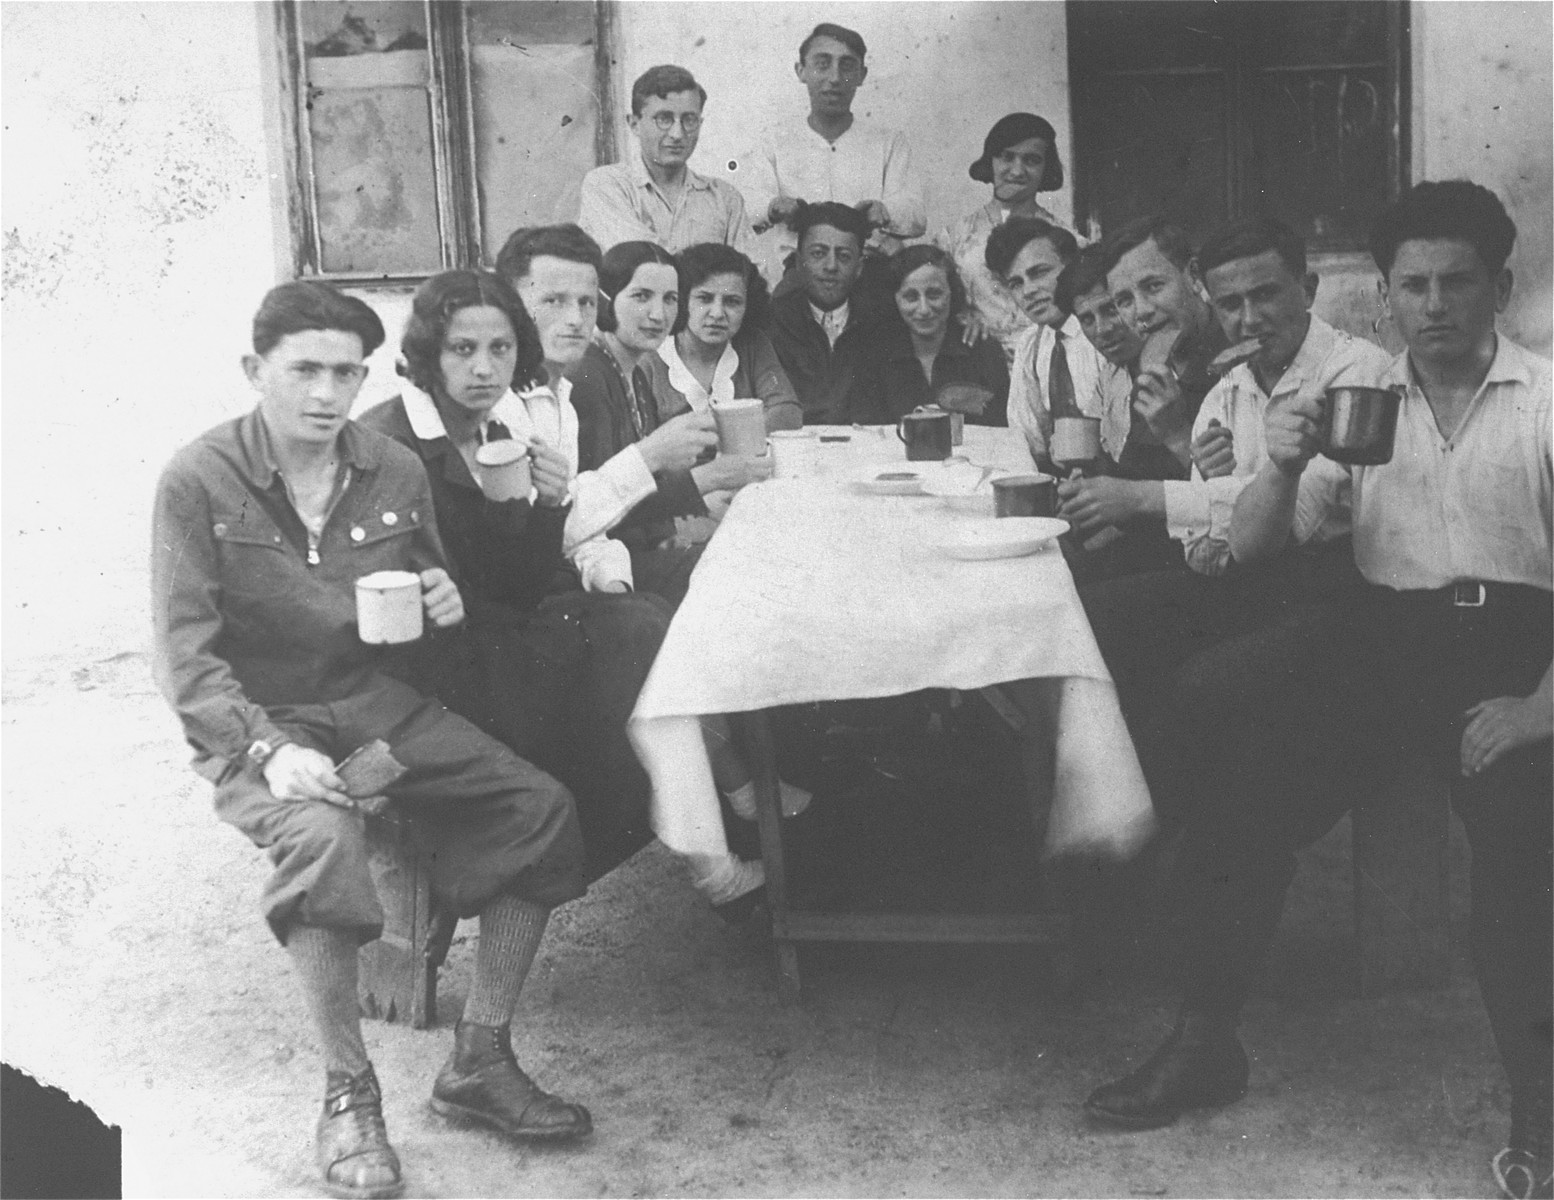 Members of a Zionist youth organization pose with coffee mugs around a table in Kolbuszowa.